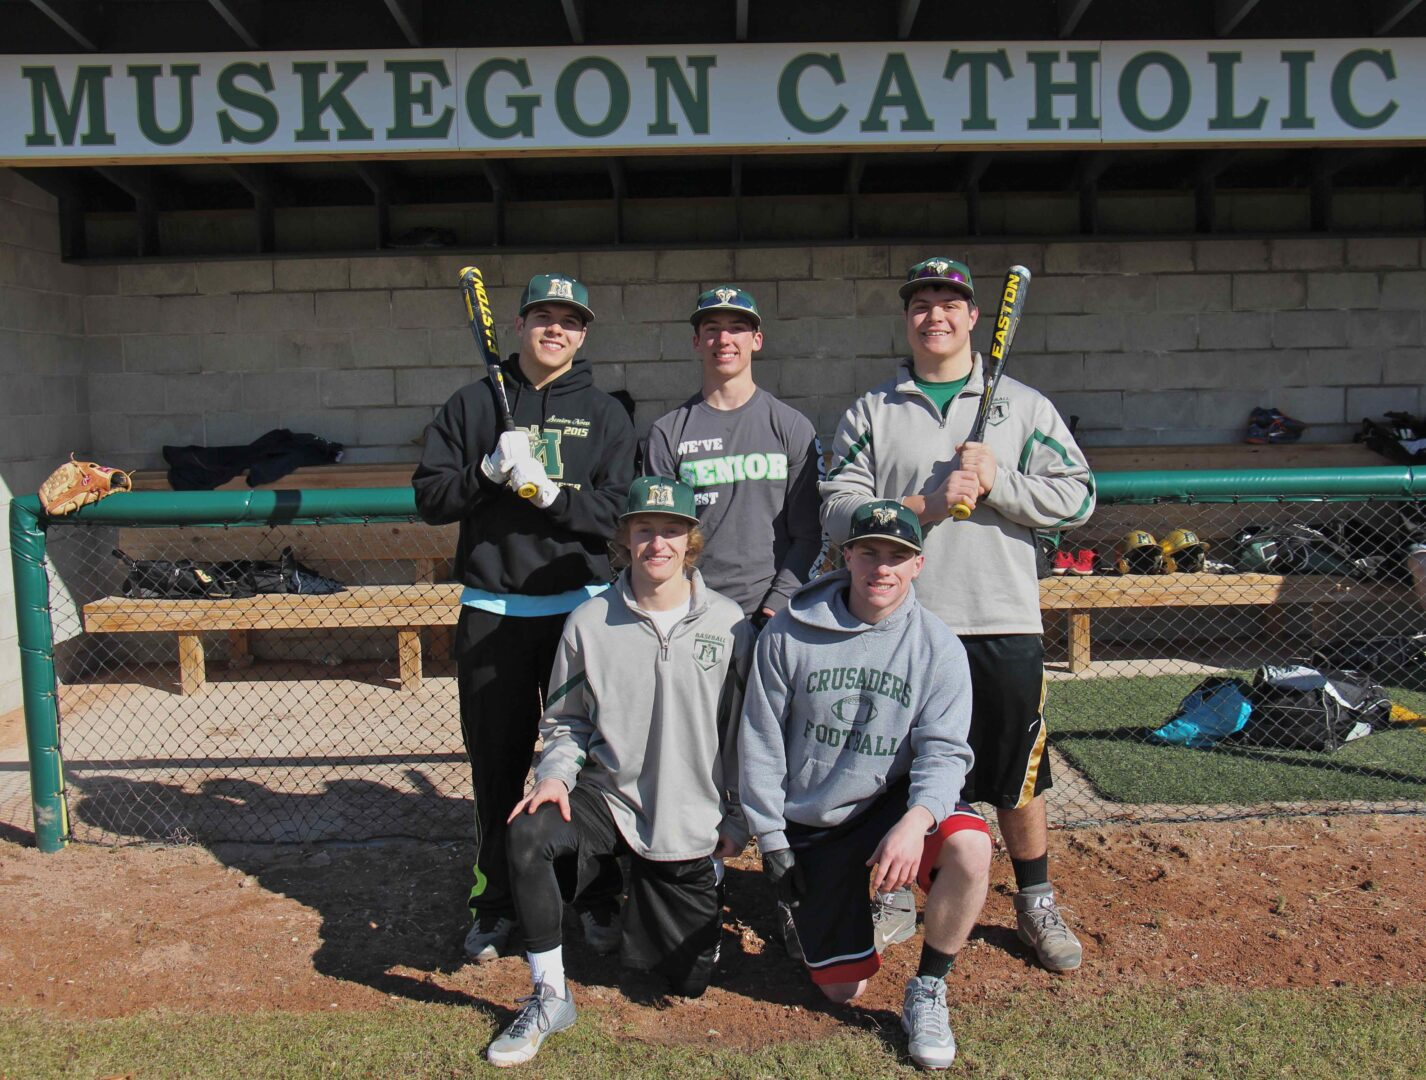 After last year's tough finish, Muskegon Catholic baseball team may have the tools to make another title run